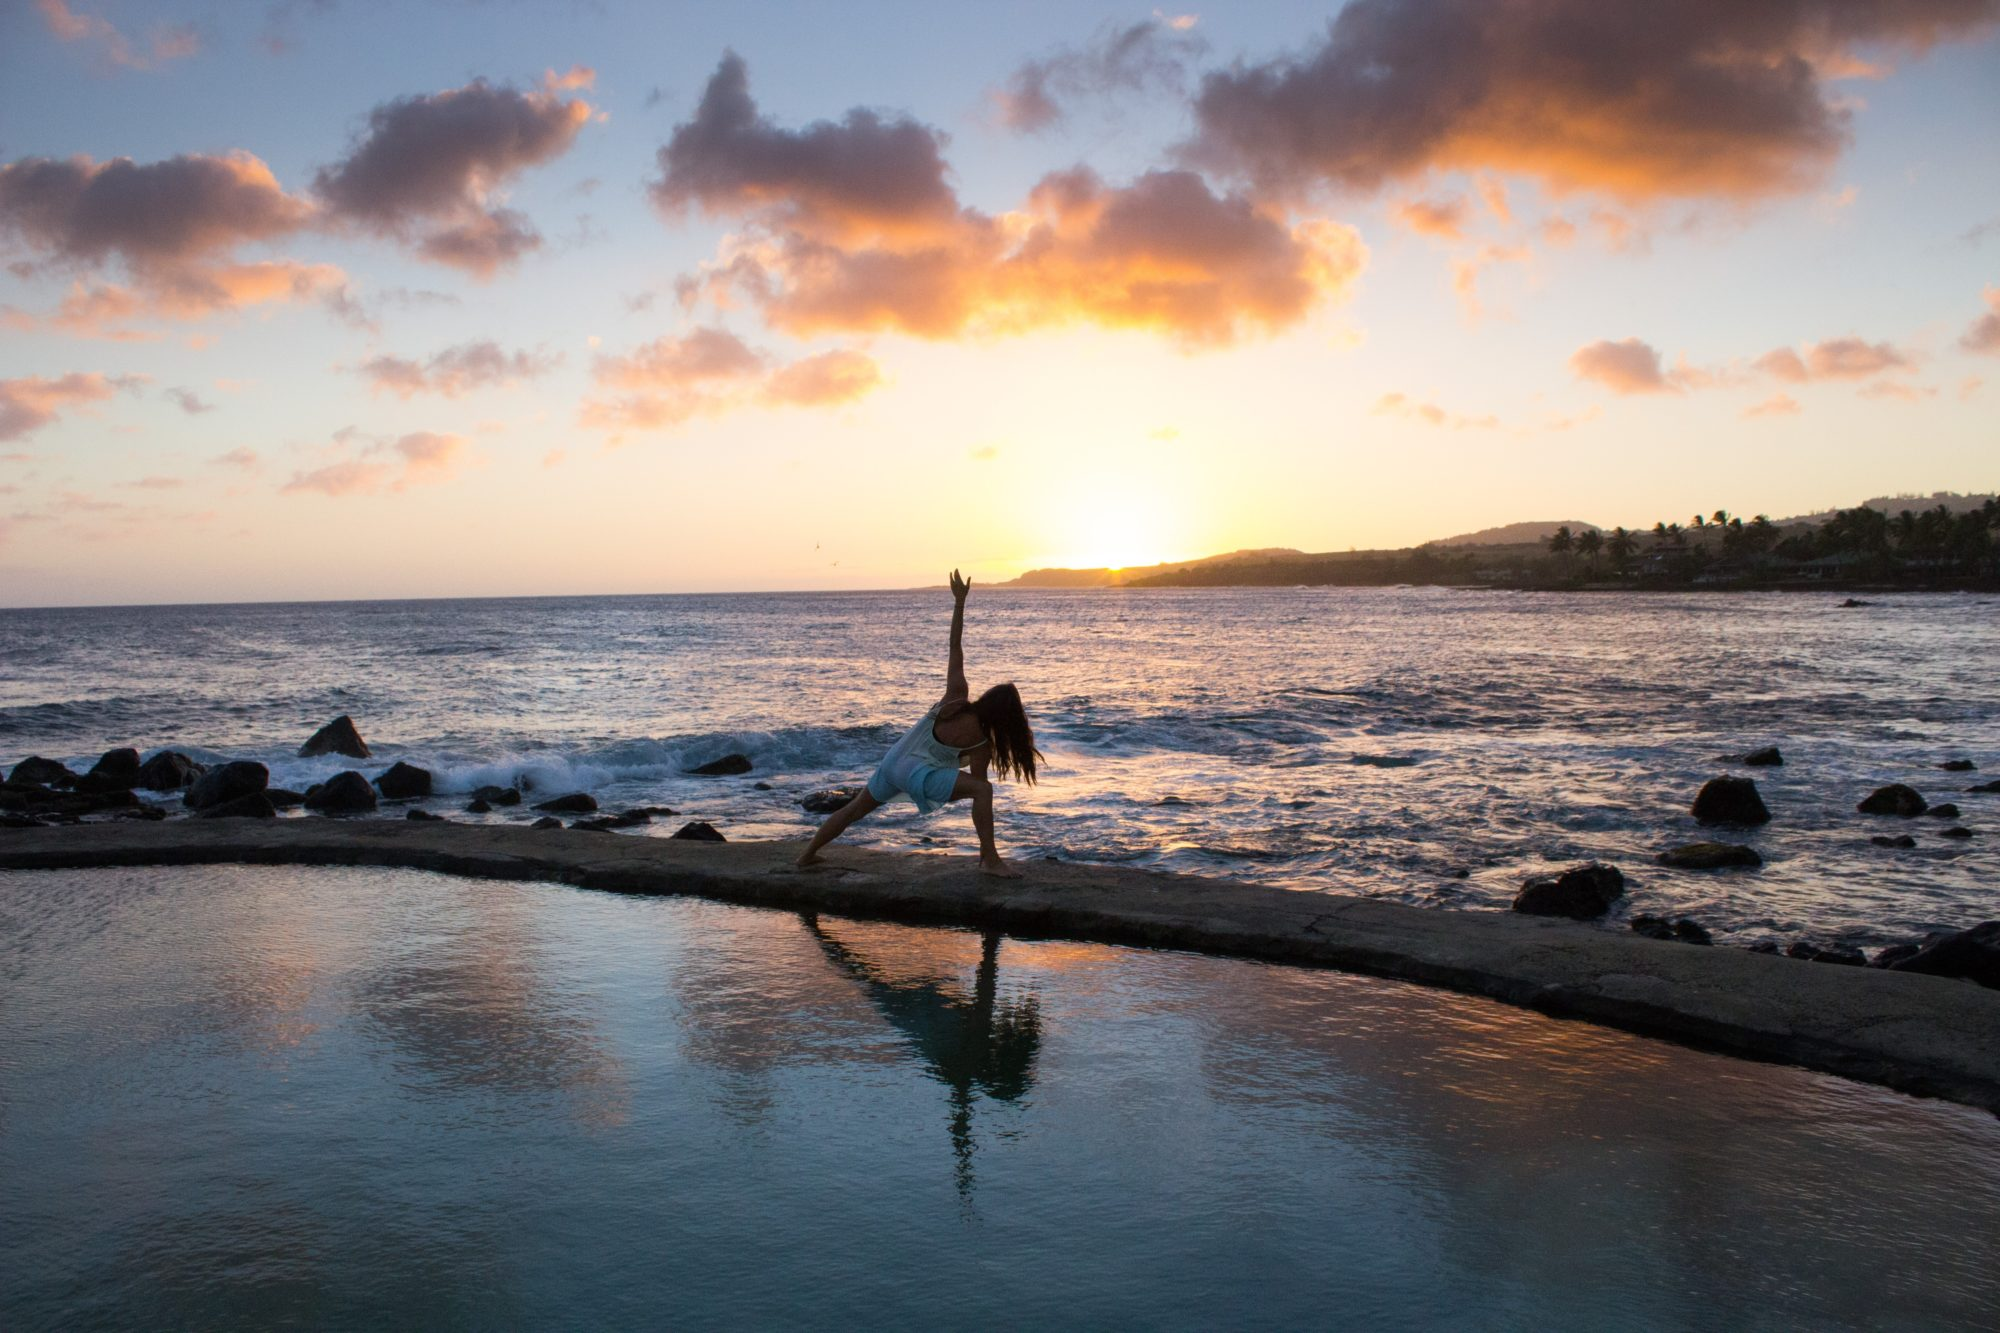 Most Popular Yoga Destinations To Visit in 2020